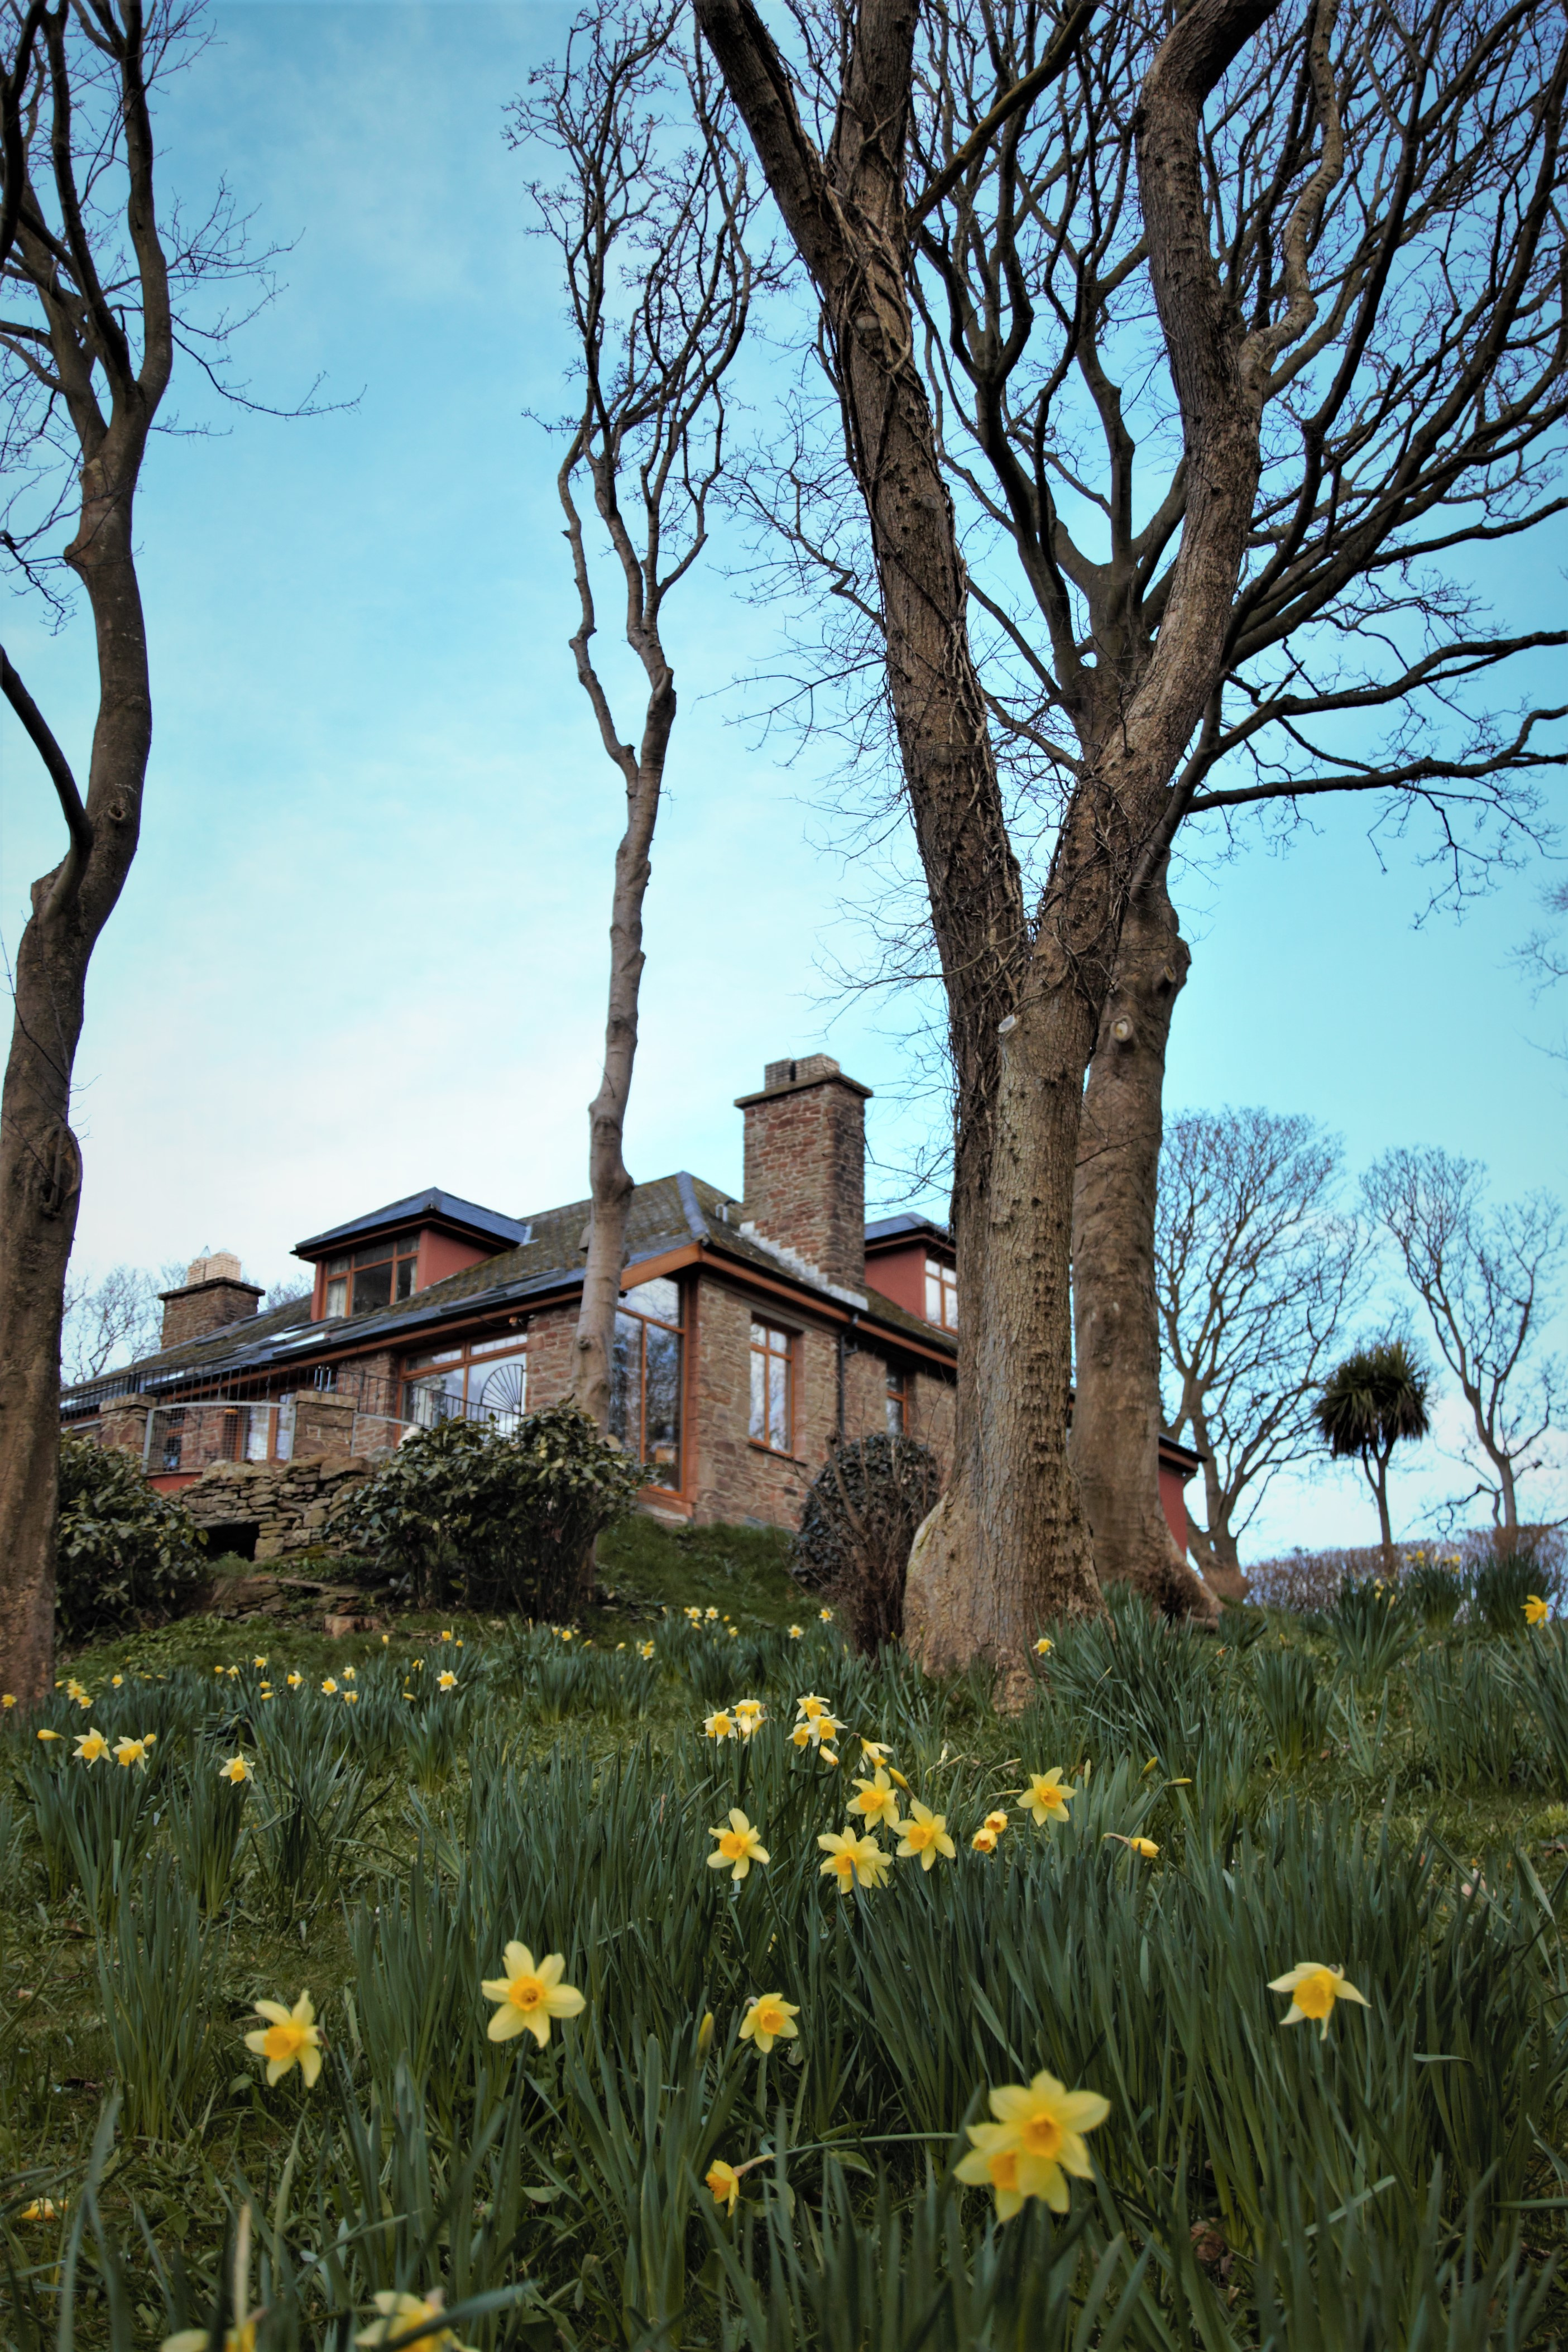 Daffodils at Langtoft Manor